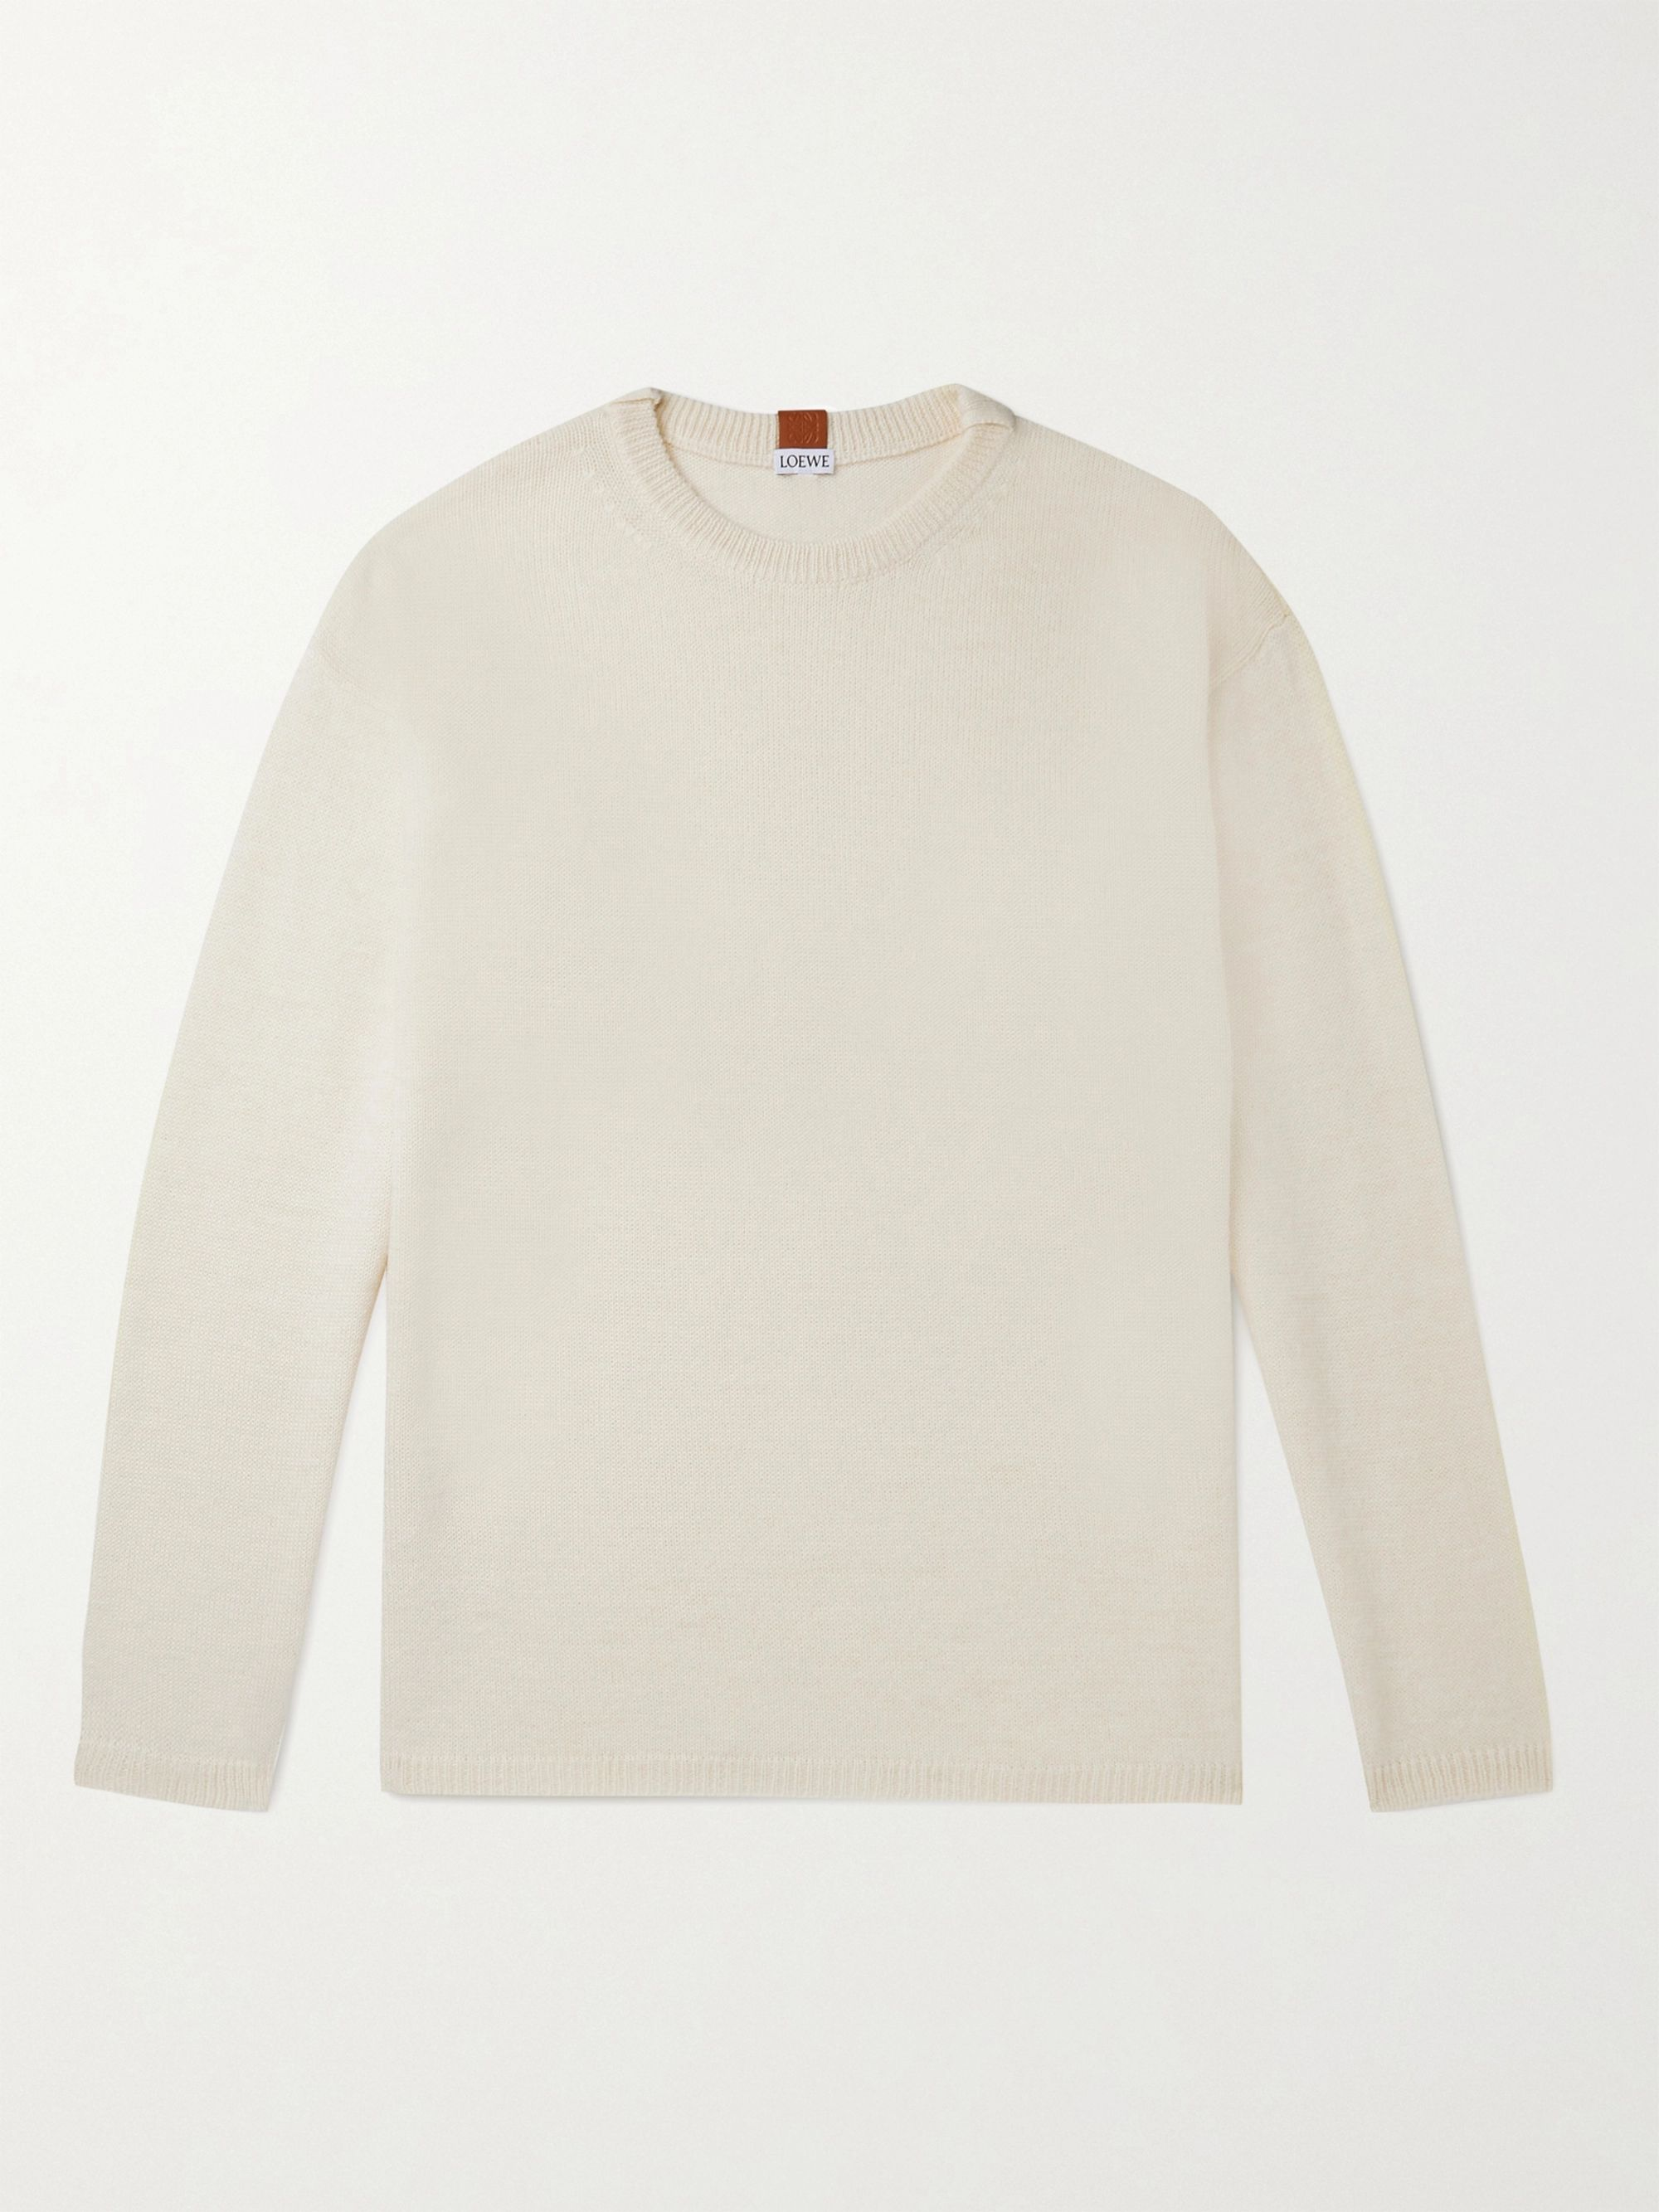 LOEWE Knitted Sweater